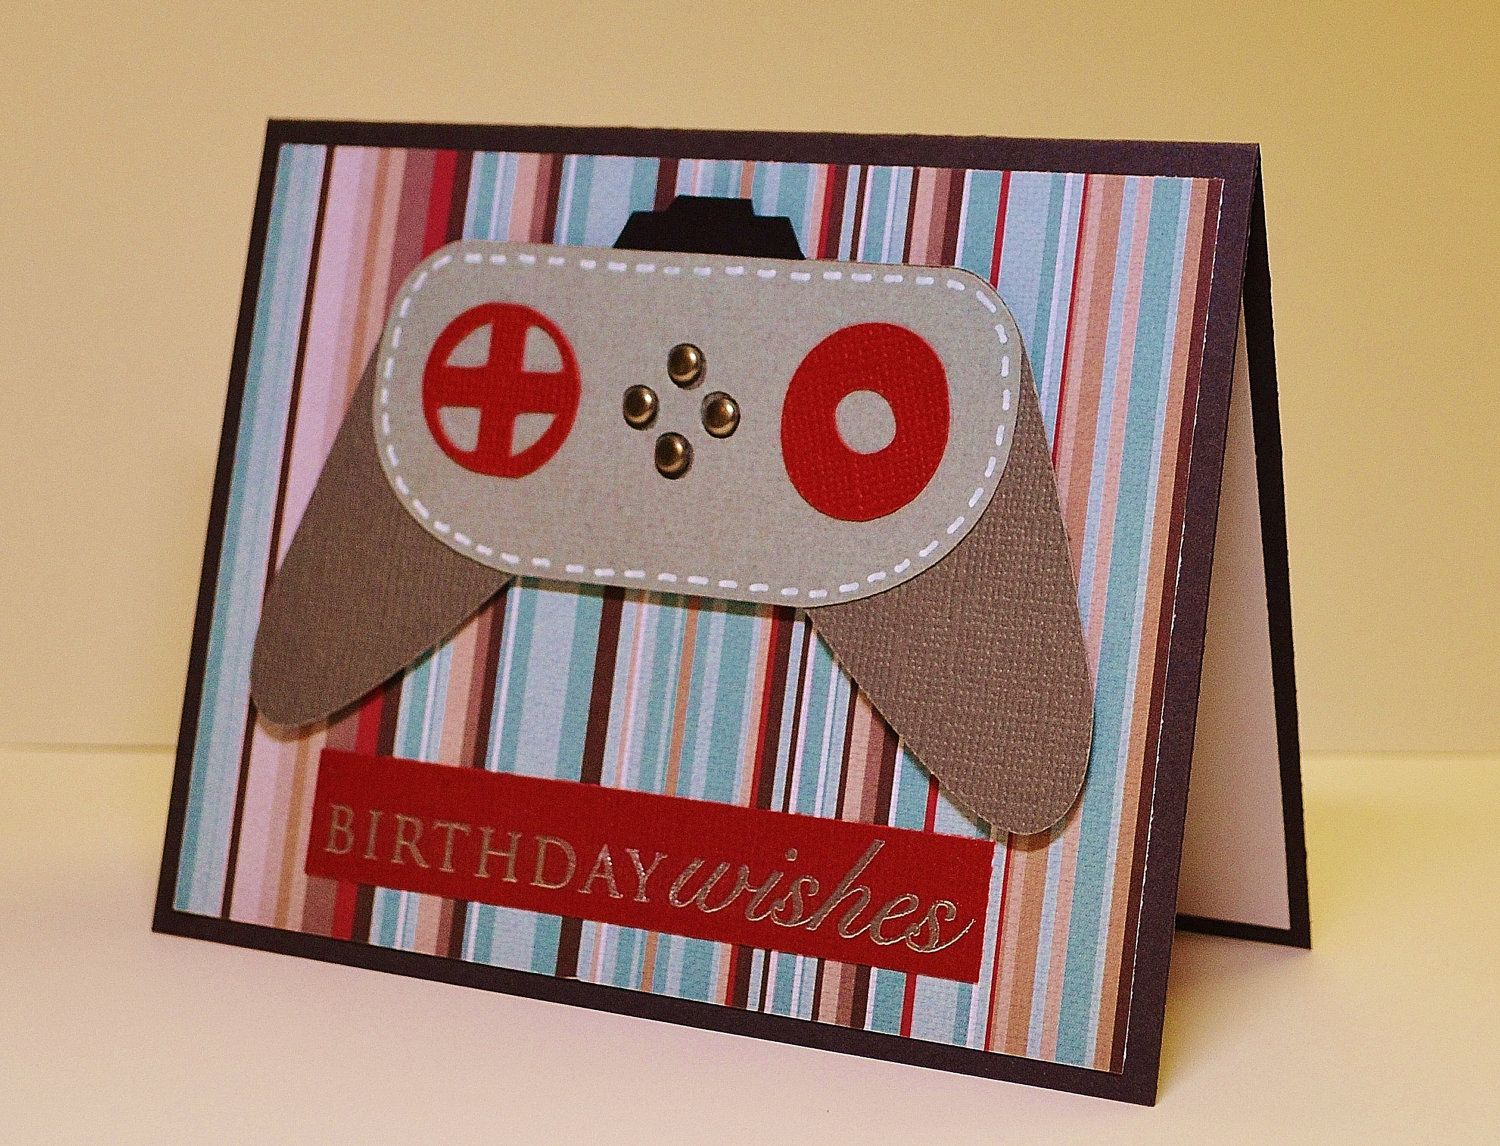 Masculine handmade birthday card video game geek birthday xbox